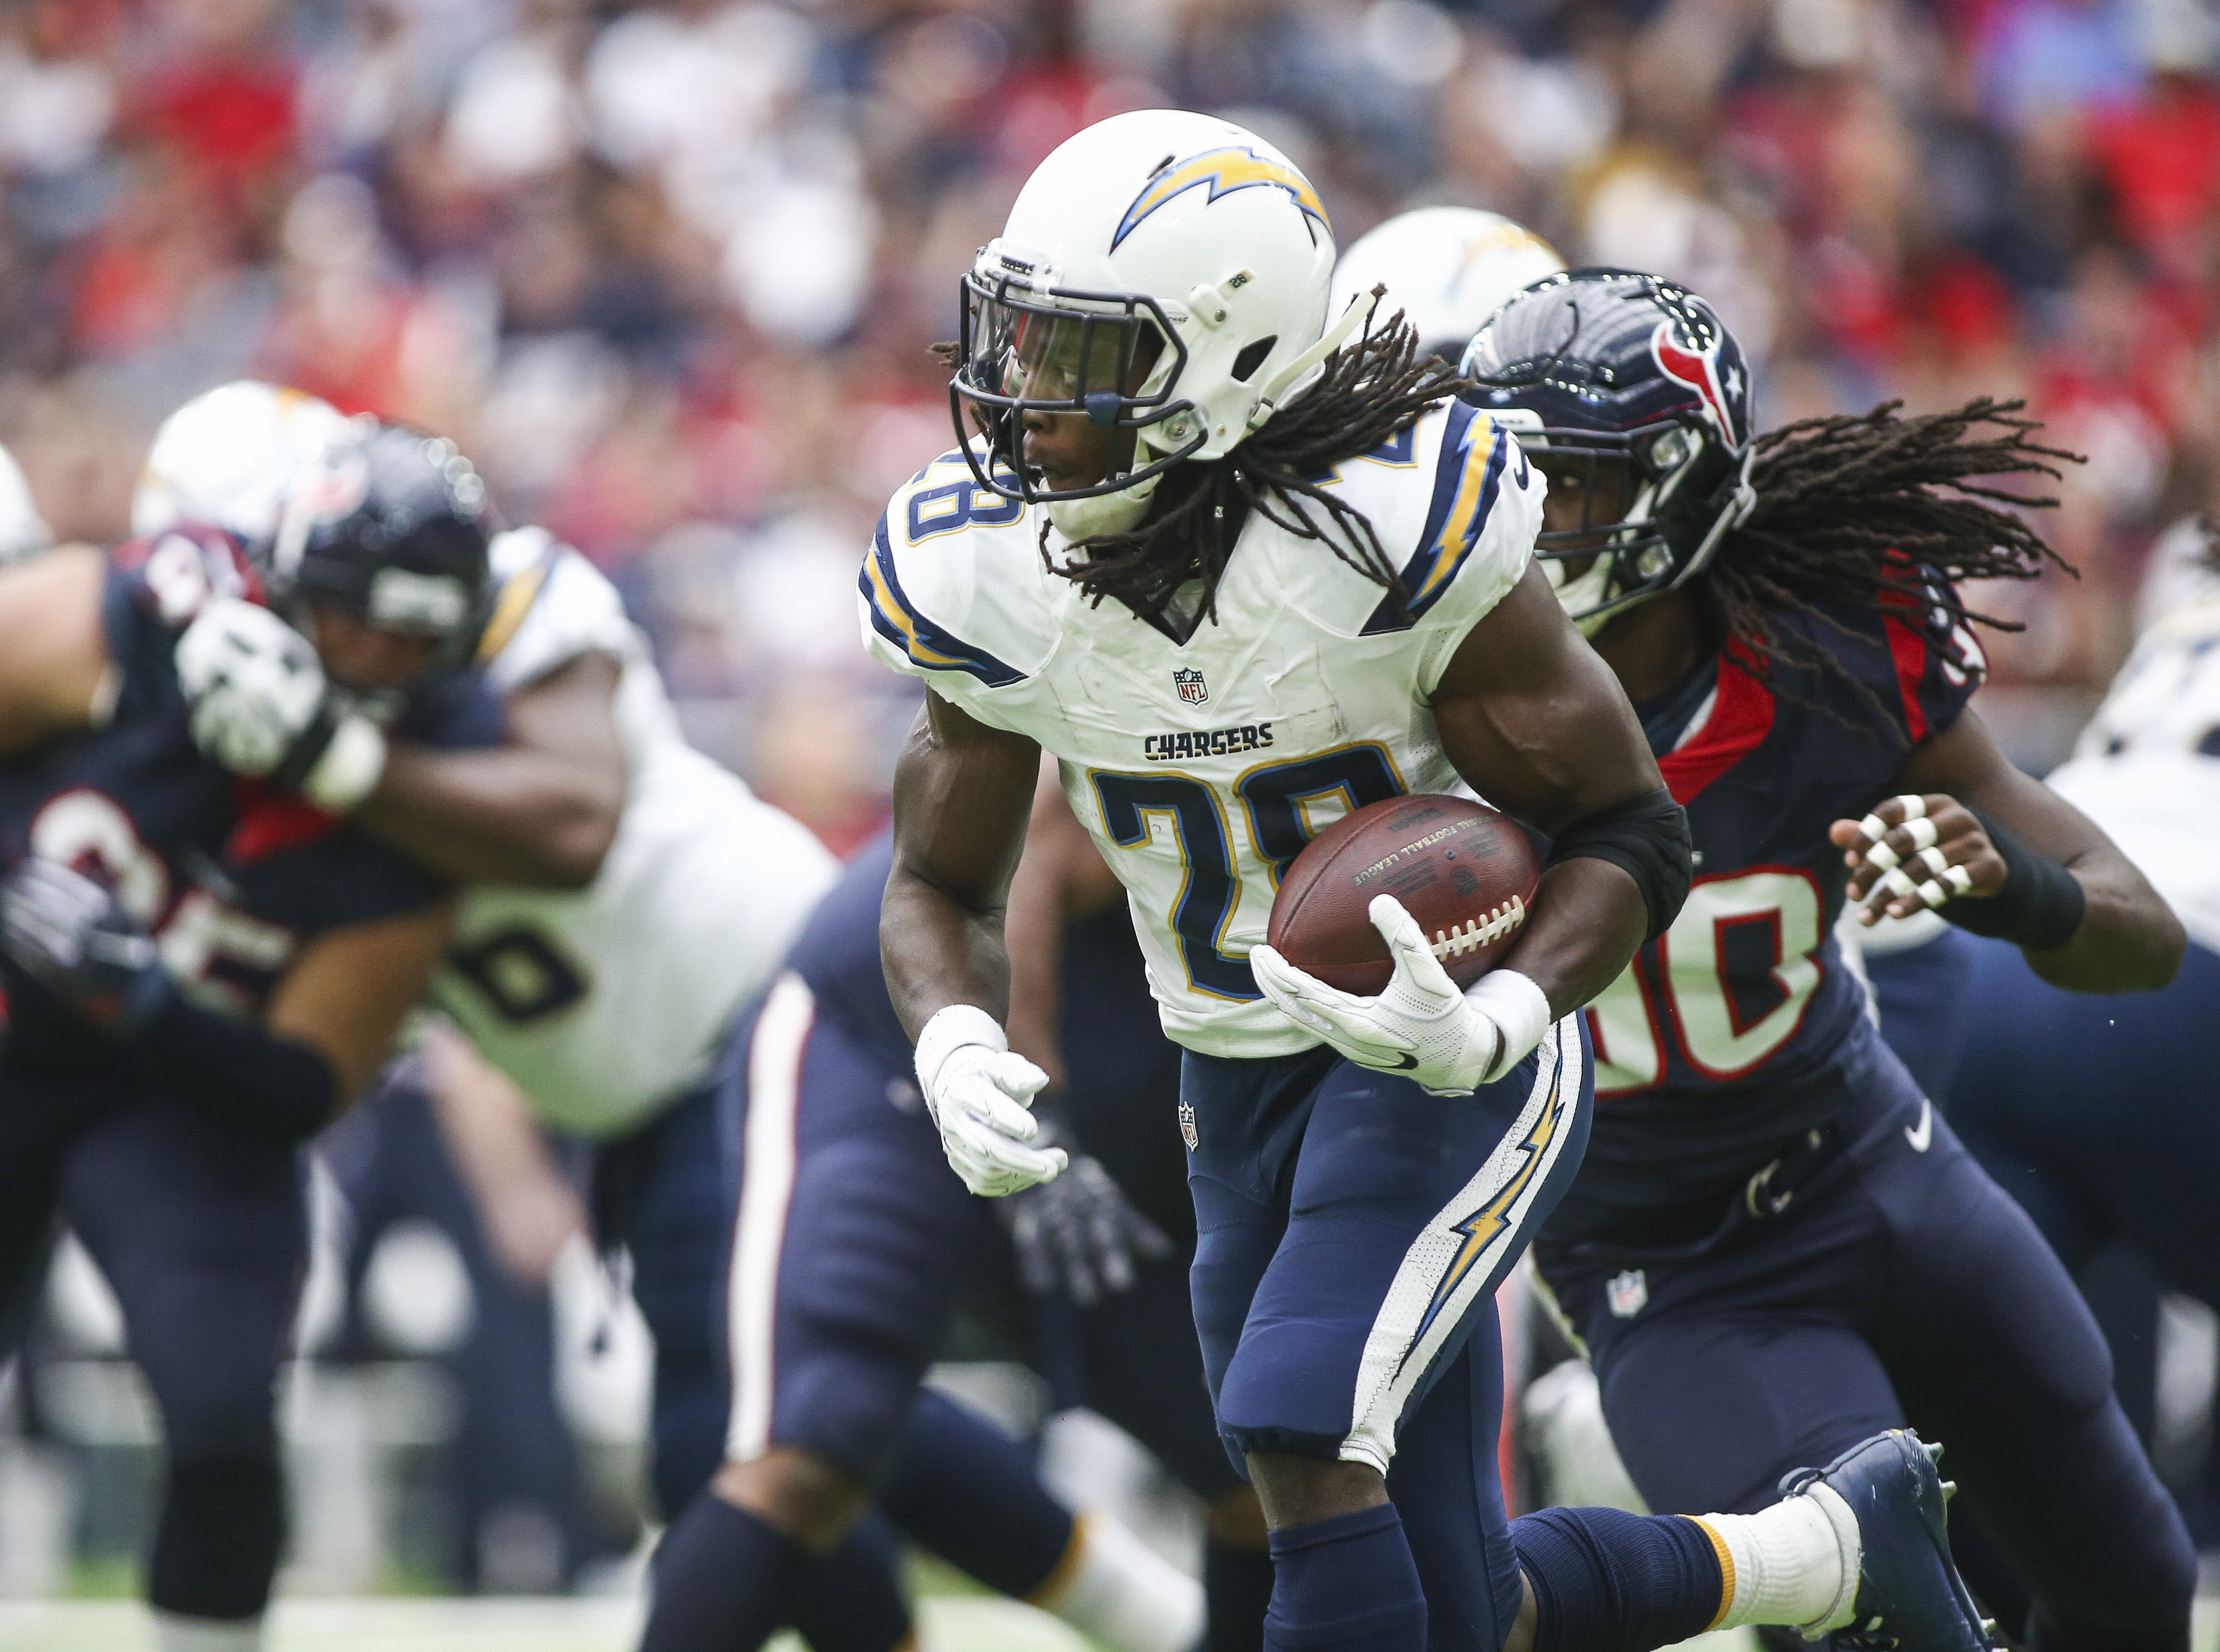 Nov 27, 2016; Houston, TX, USA; San Diego Chargers running back Melvin Gordon (28) rushes during the first quarter against the Houston Texans at NRG Stadium. Mandatory Credit: Troy Taormina-USA TODAY Sports ORG XMIT: USATSI-268562 ORIG FILE ID: 20161127_ggw_at5_021.JPG